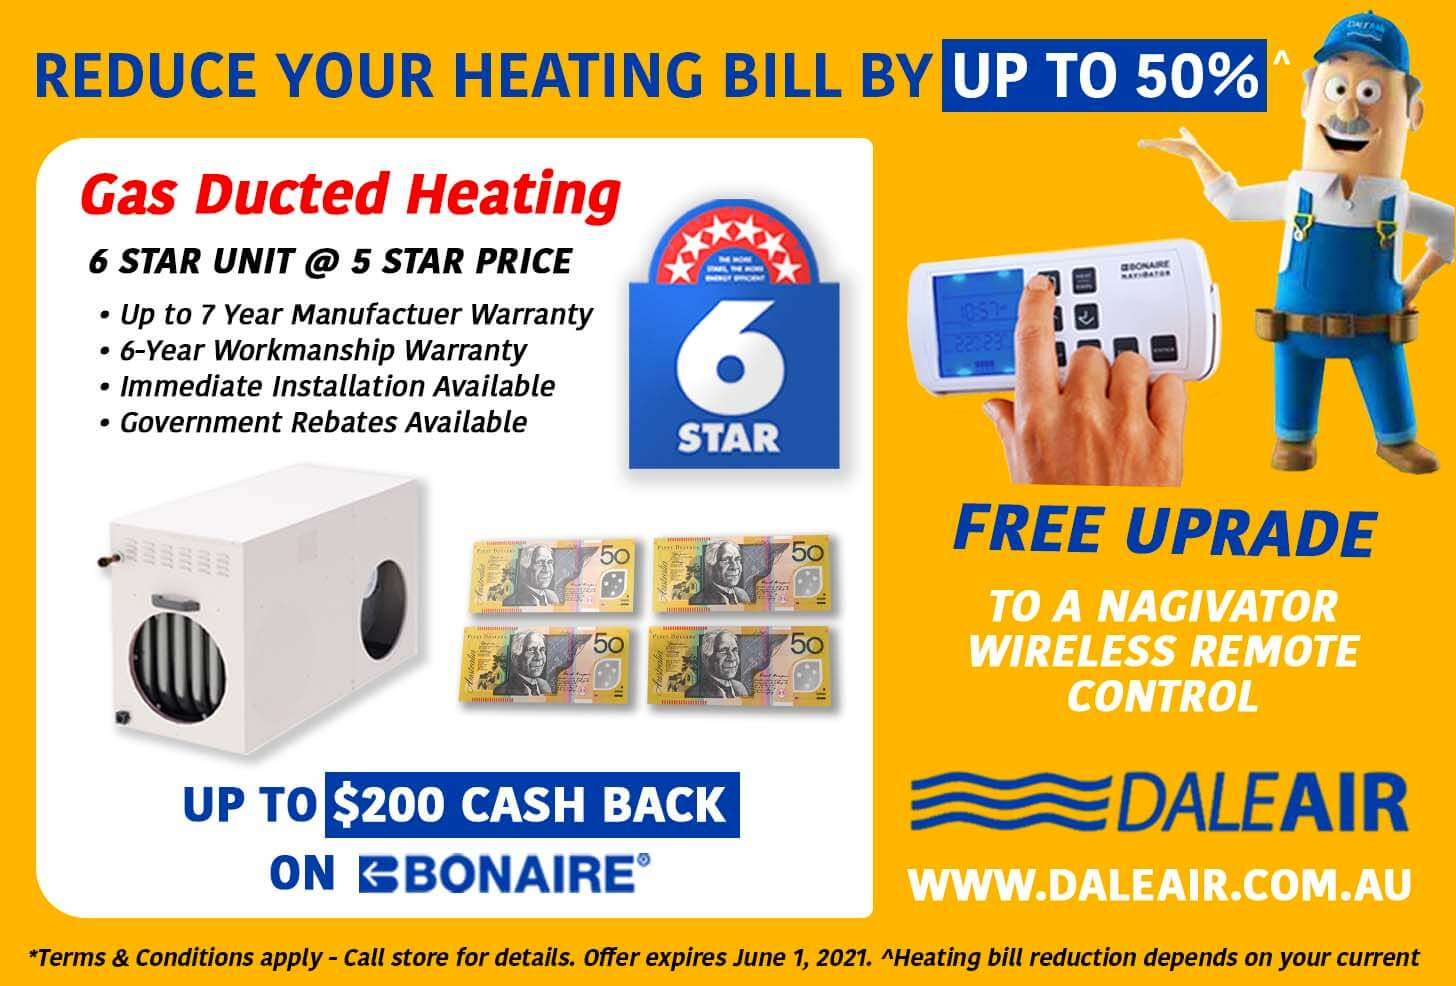 Gas Ducted Heating - Bonaire Offer